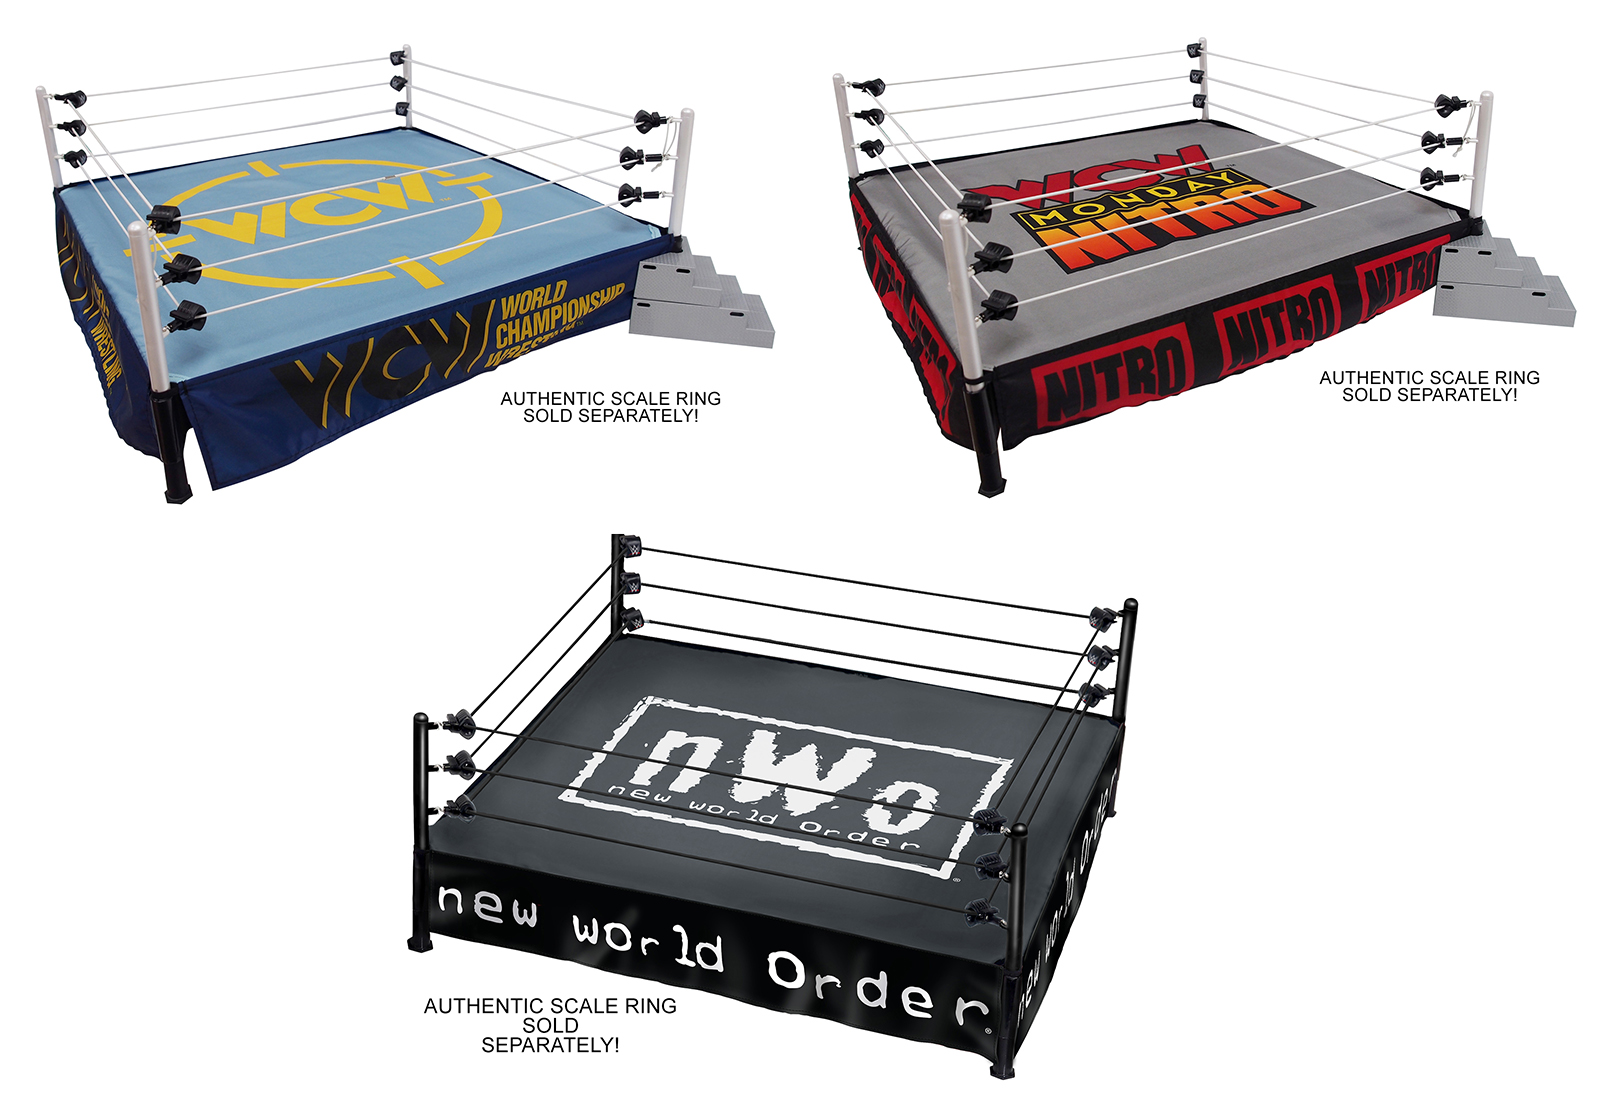 WCW Nitro /& WCW Classic Package Deal Set of 4 2 Ring Skirts /& 2 Ring Mats